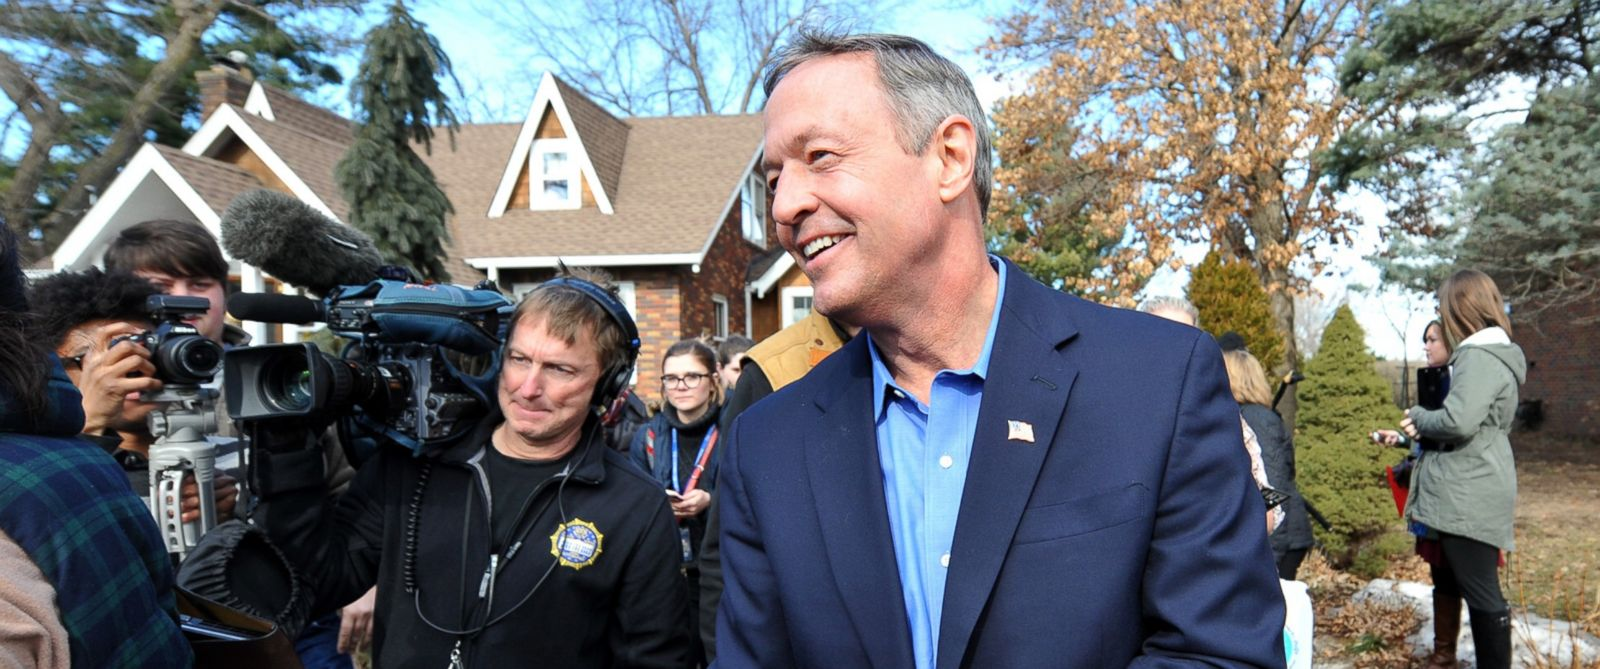 PHOTO: Democratic presidential candidate Martin OMalley greets potential supporters at a residence, Jan. 31, 2016 in Johnston, Iowa.